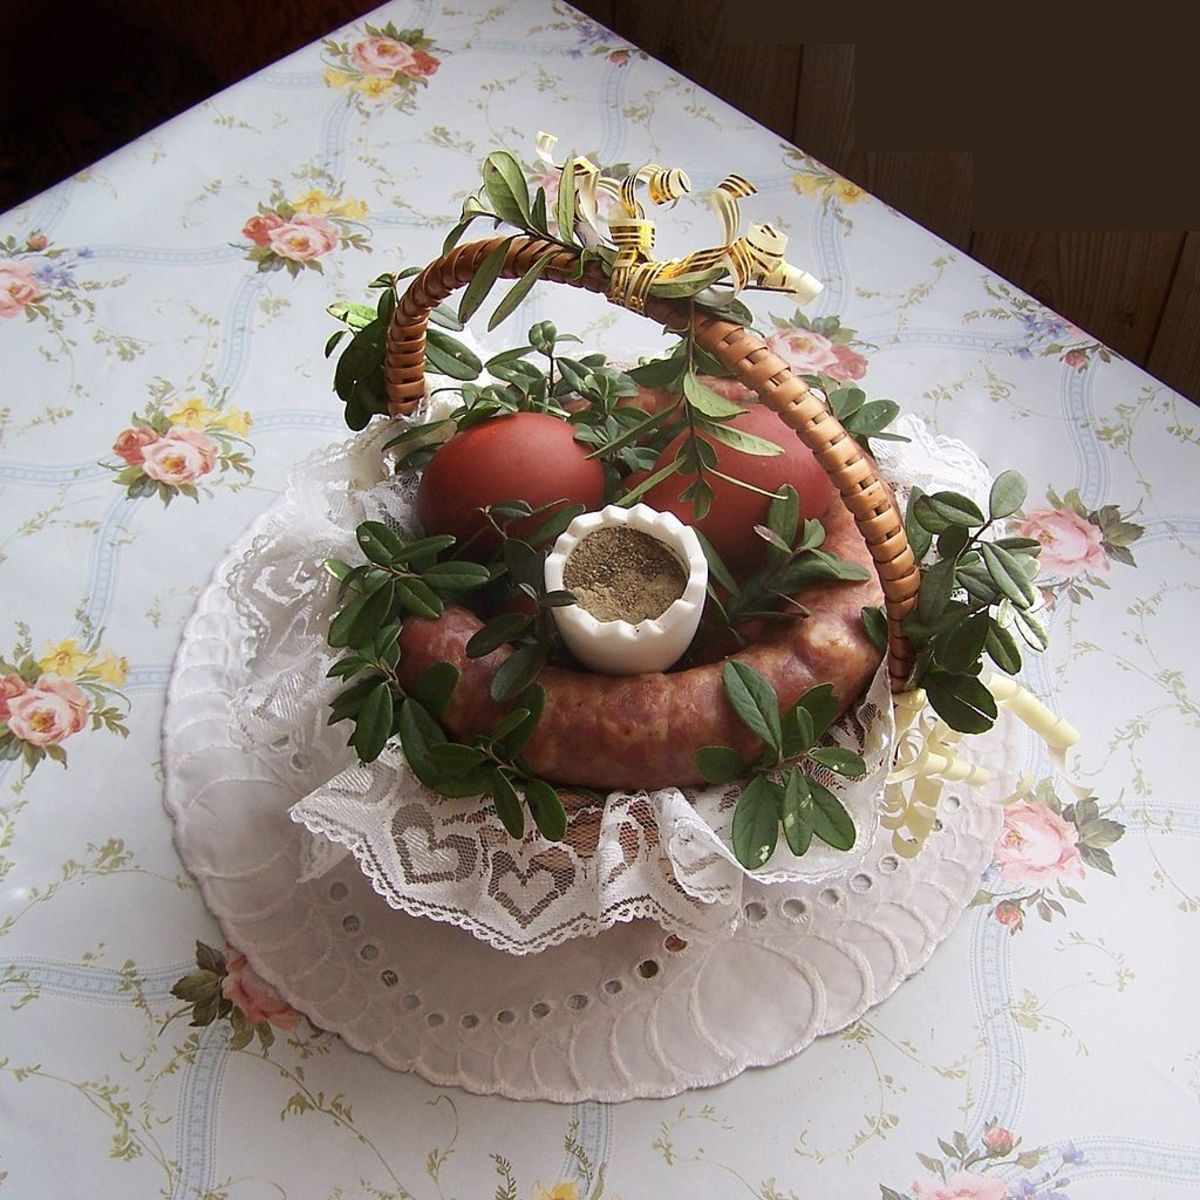 This is one type of Polish Easter Basket that is used to carry food to church for blessing on Easter Saturday. It has kielbasa, boiled eggs, salt, pepper and bread.